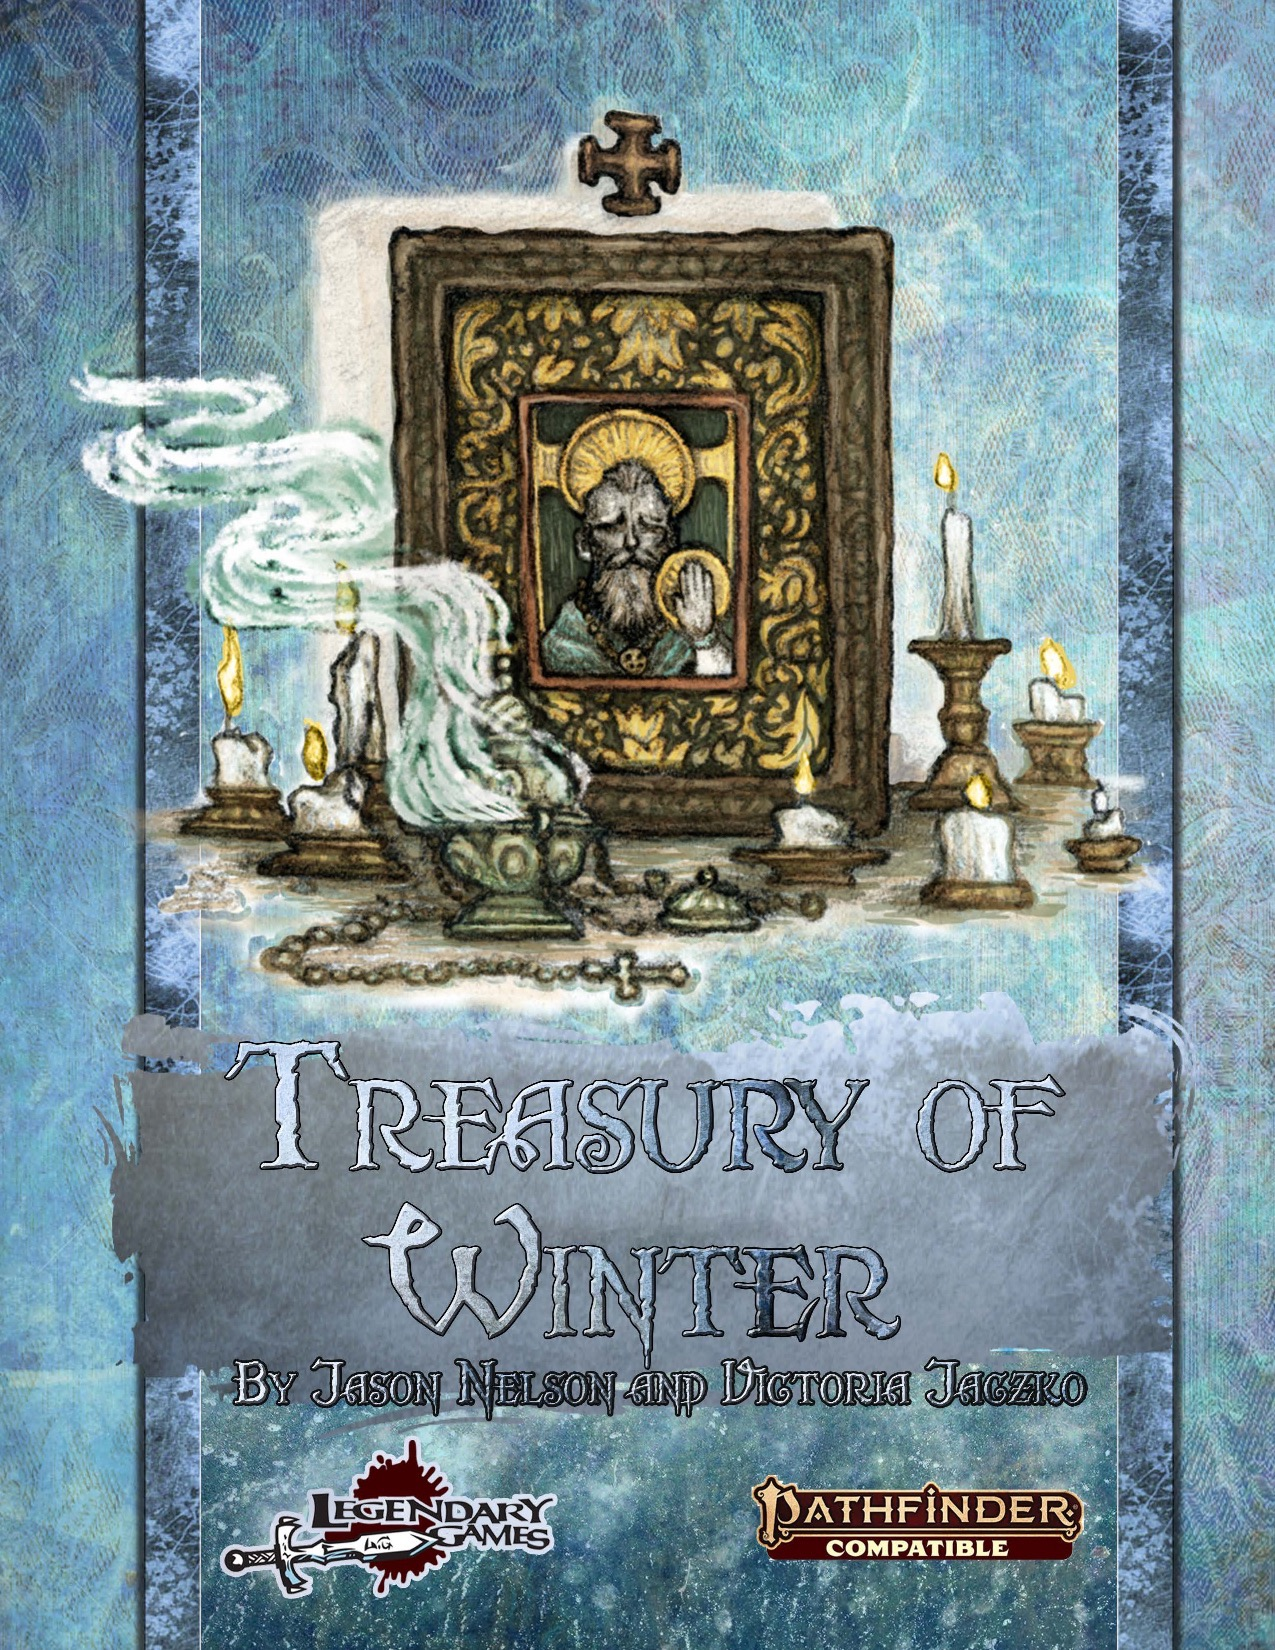 Treasury of Winter PDF: cover featuring a small gold shrine with the image of a saint surrounded by candles and incense